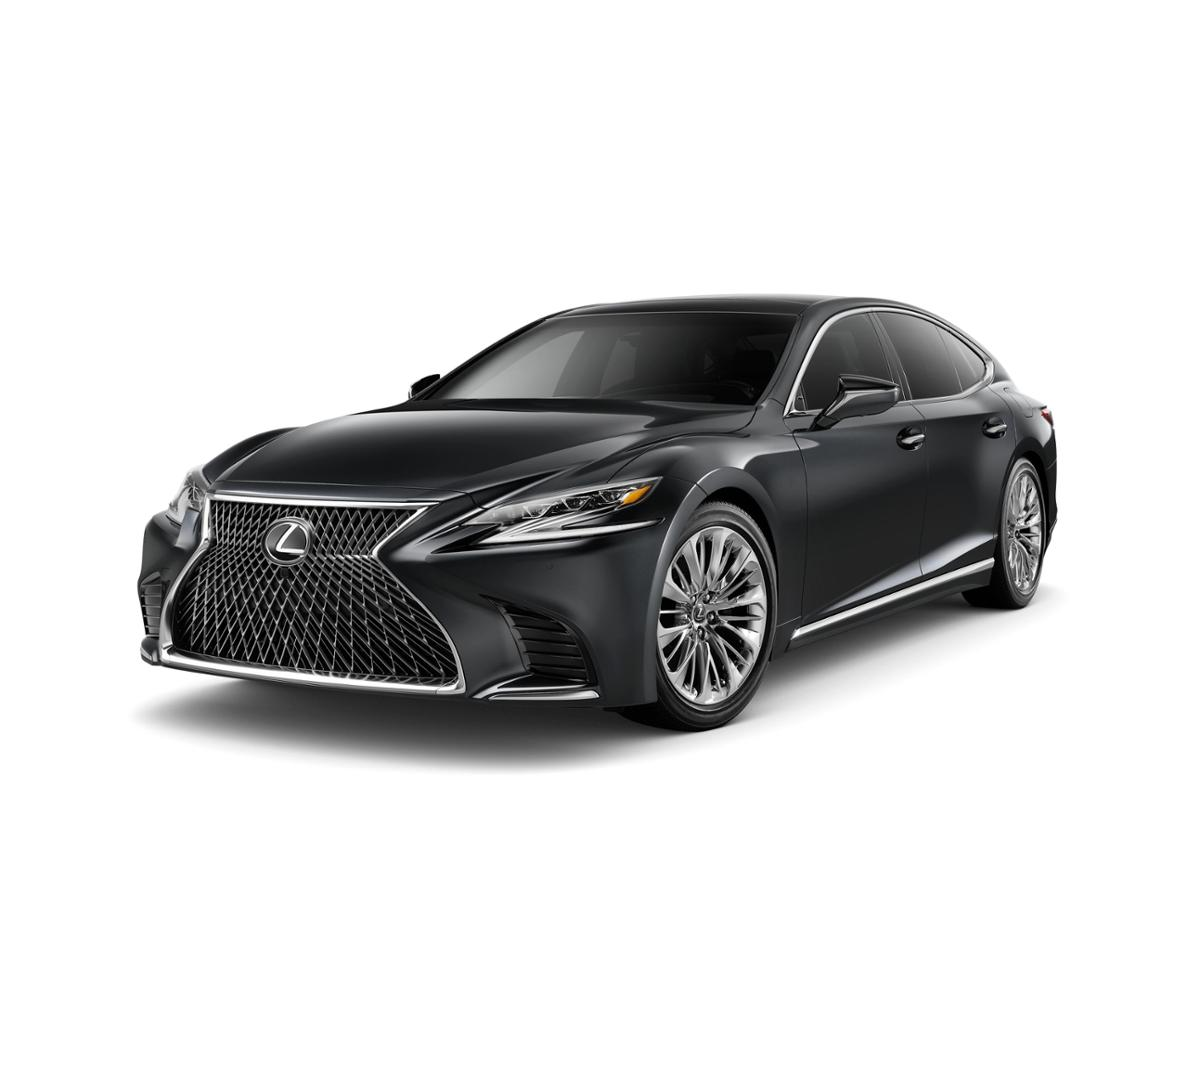 2019 Lexus LS 500 Vehicle Photo in Larchmont, NY 10538